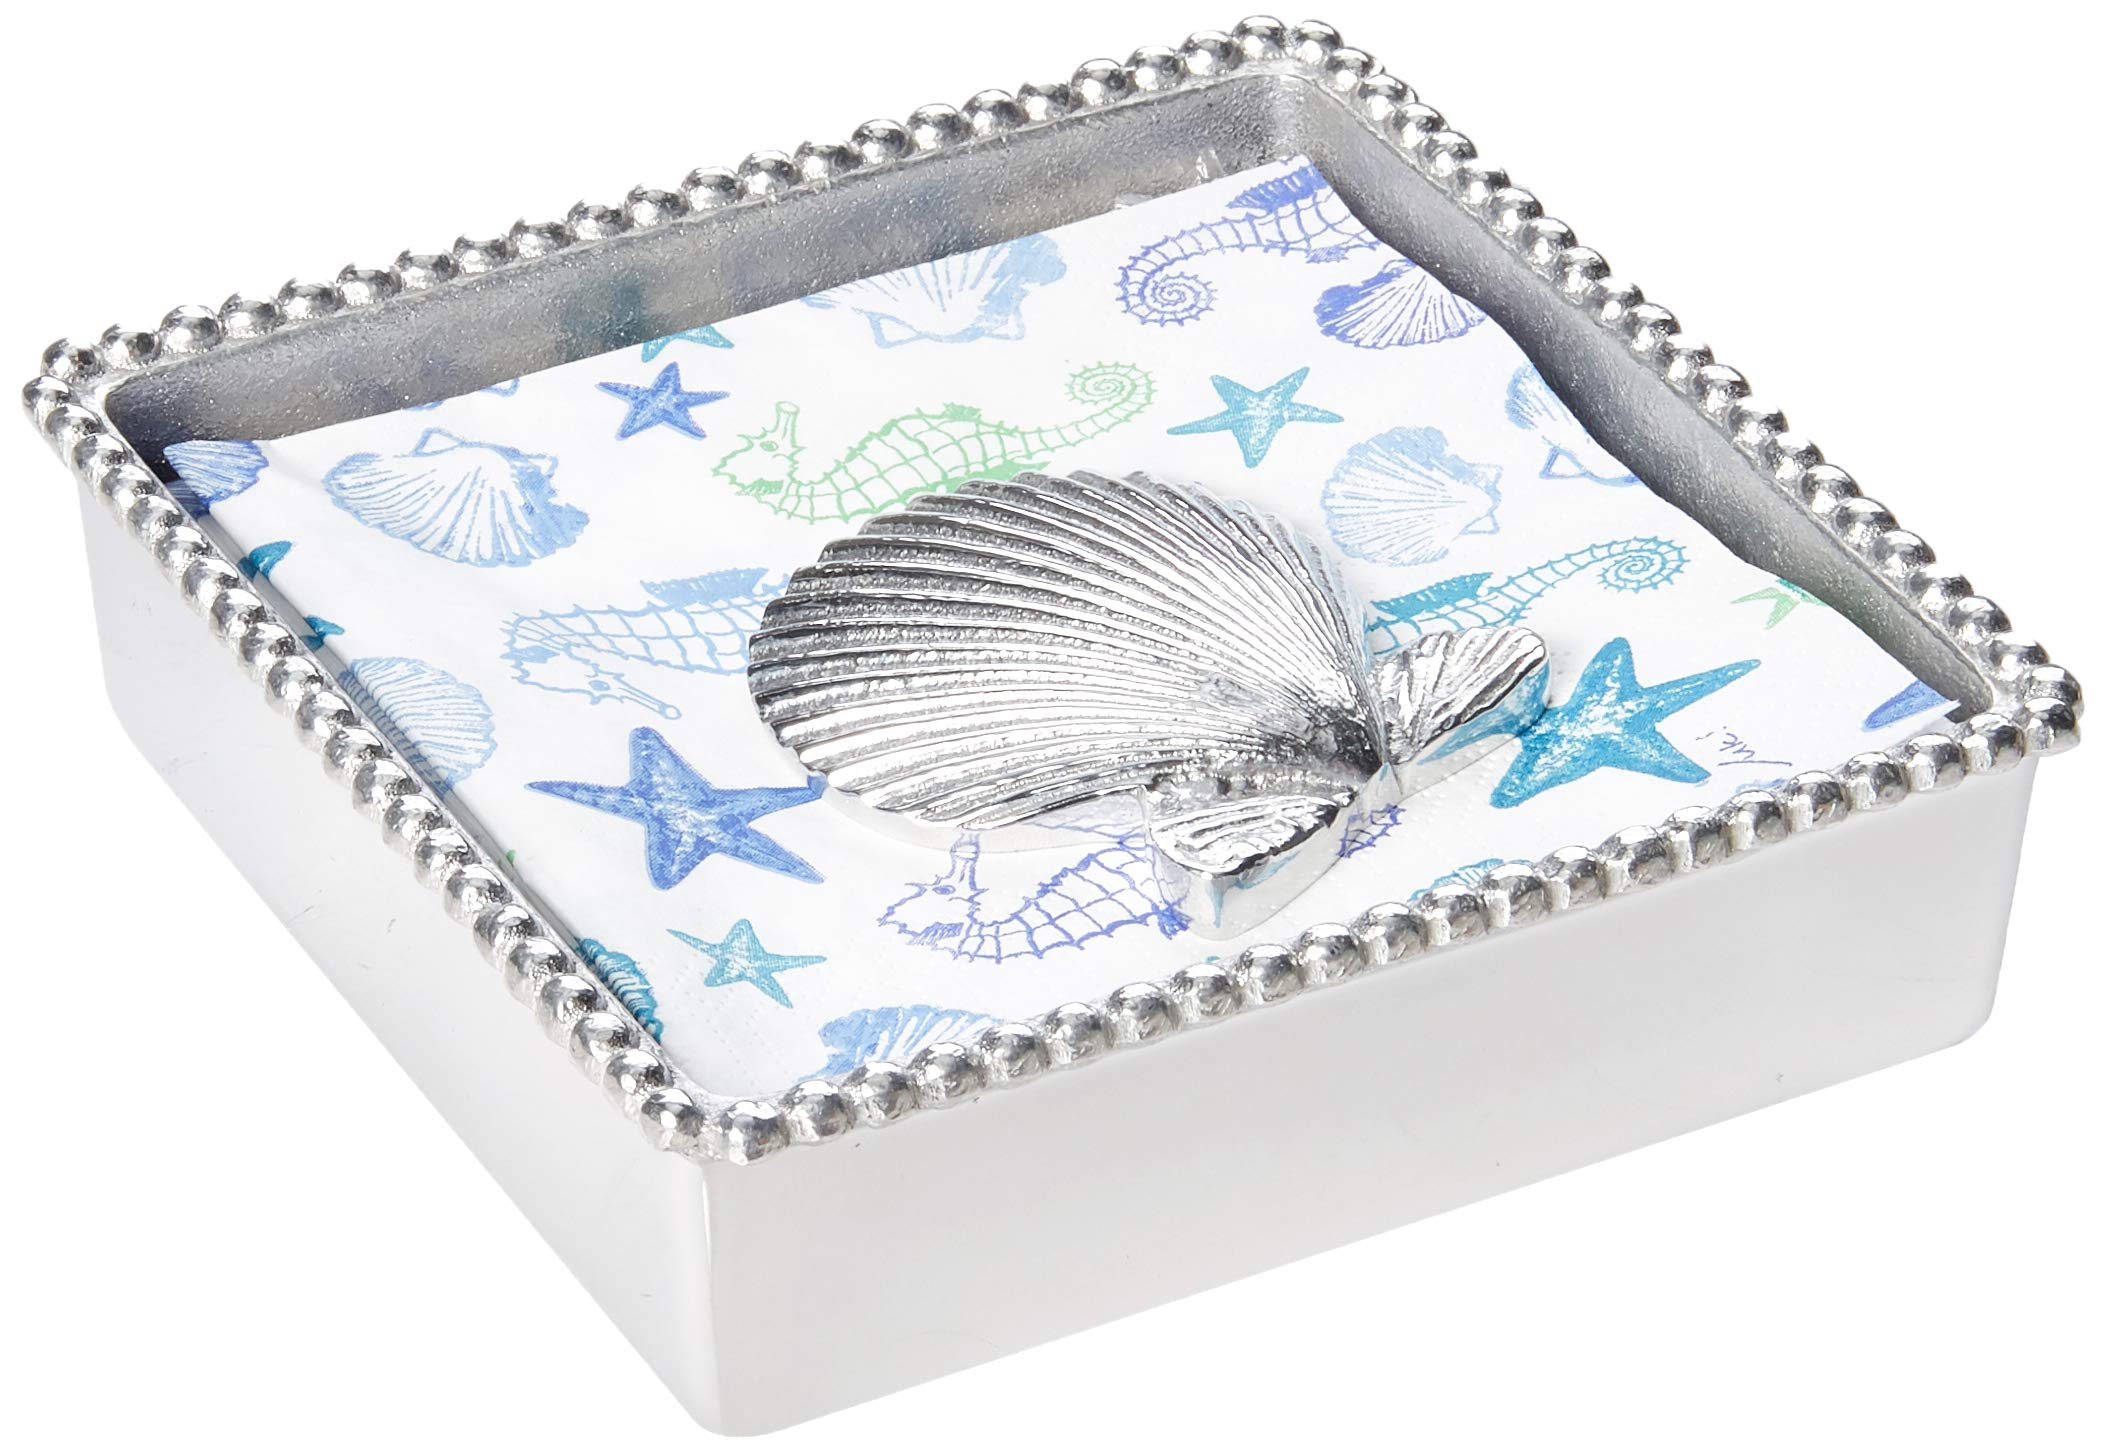 Mariposa Scallop Shell Beaded Napkin Box by MARIPOSA